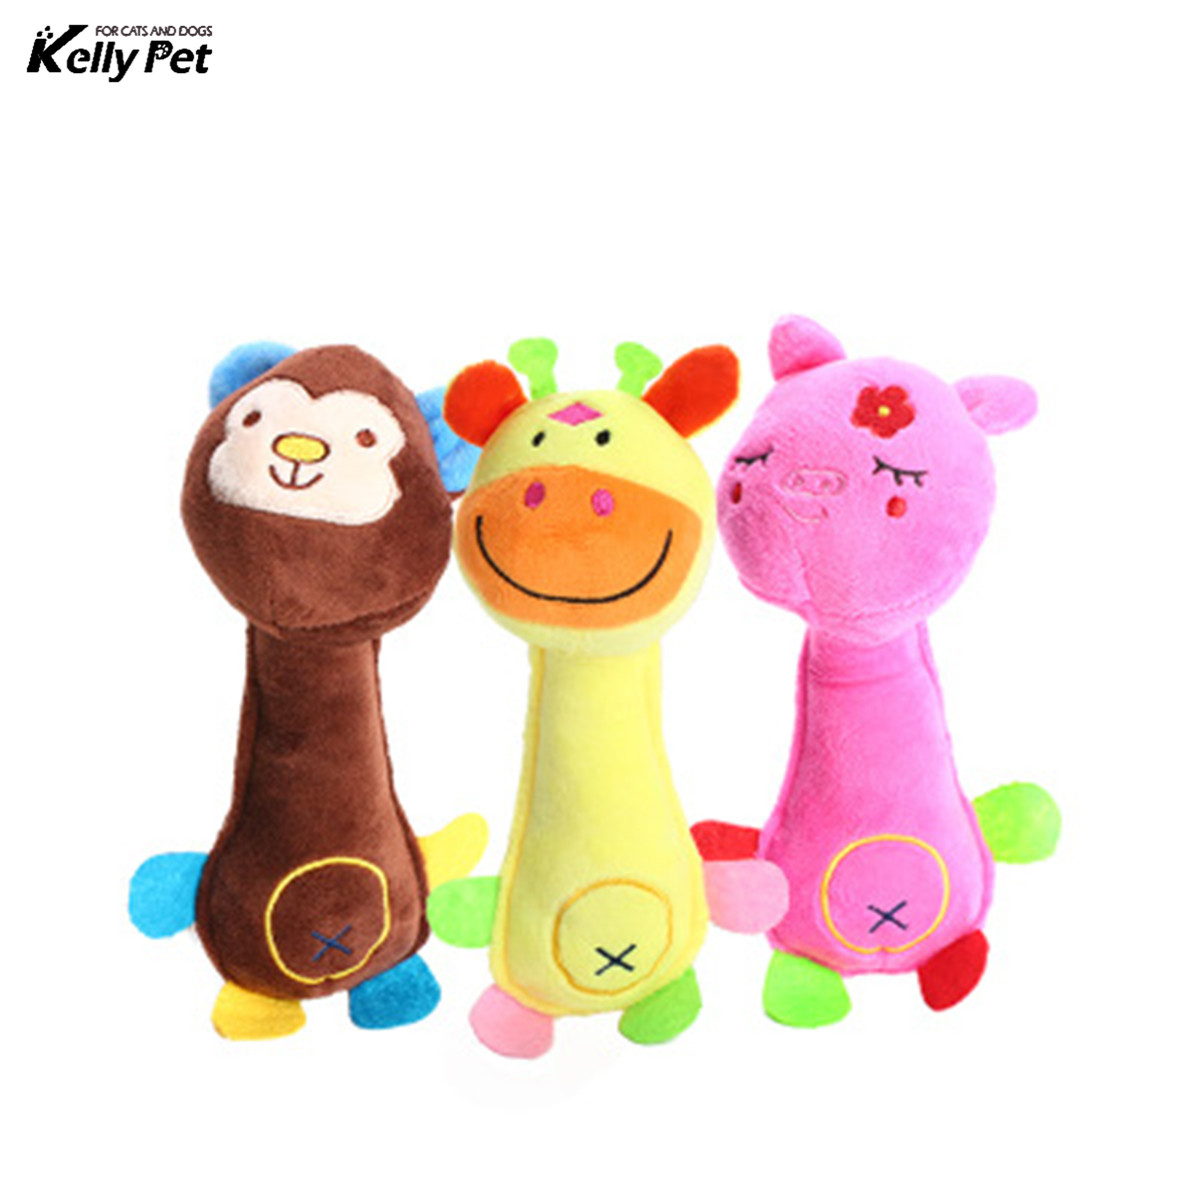 Animal chew toy dog toys cat vocalization in cloth dolls toy Monkey pig deer pet toys accessories products high quality in Dog Toys from Home Garden